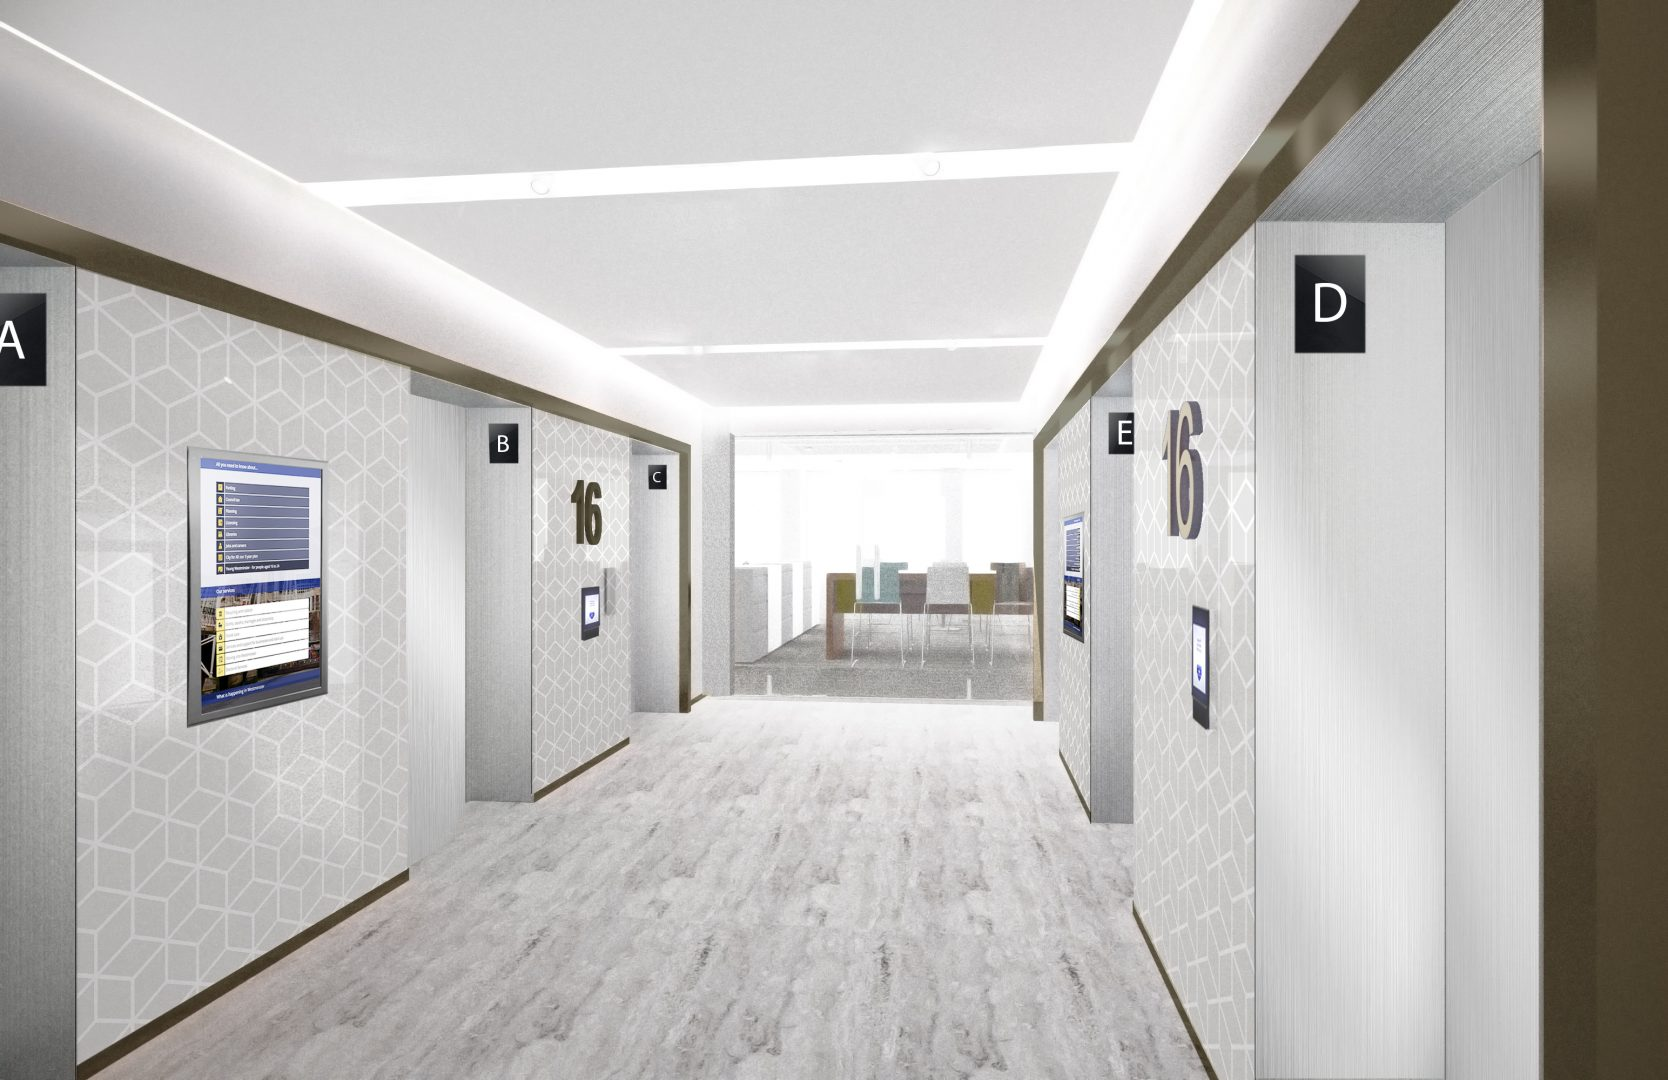 Interior_lift-lobby_Lift-Lobby_without-People